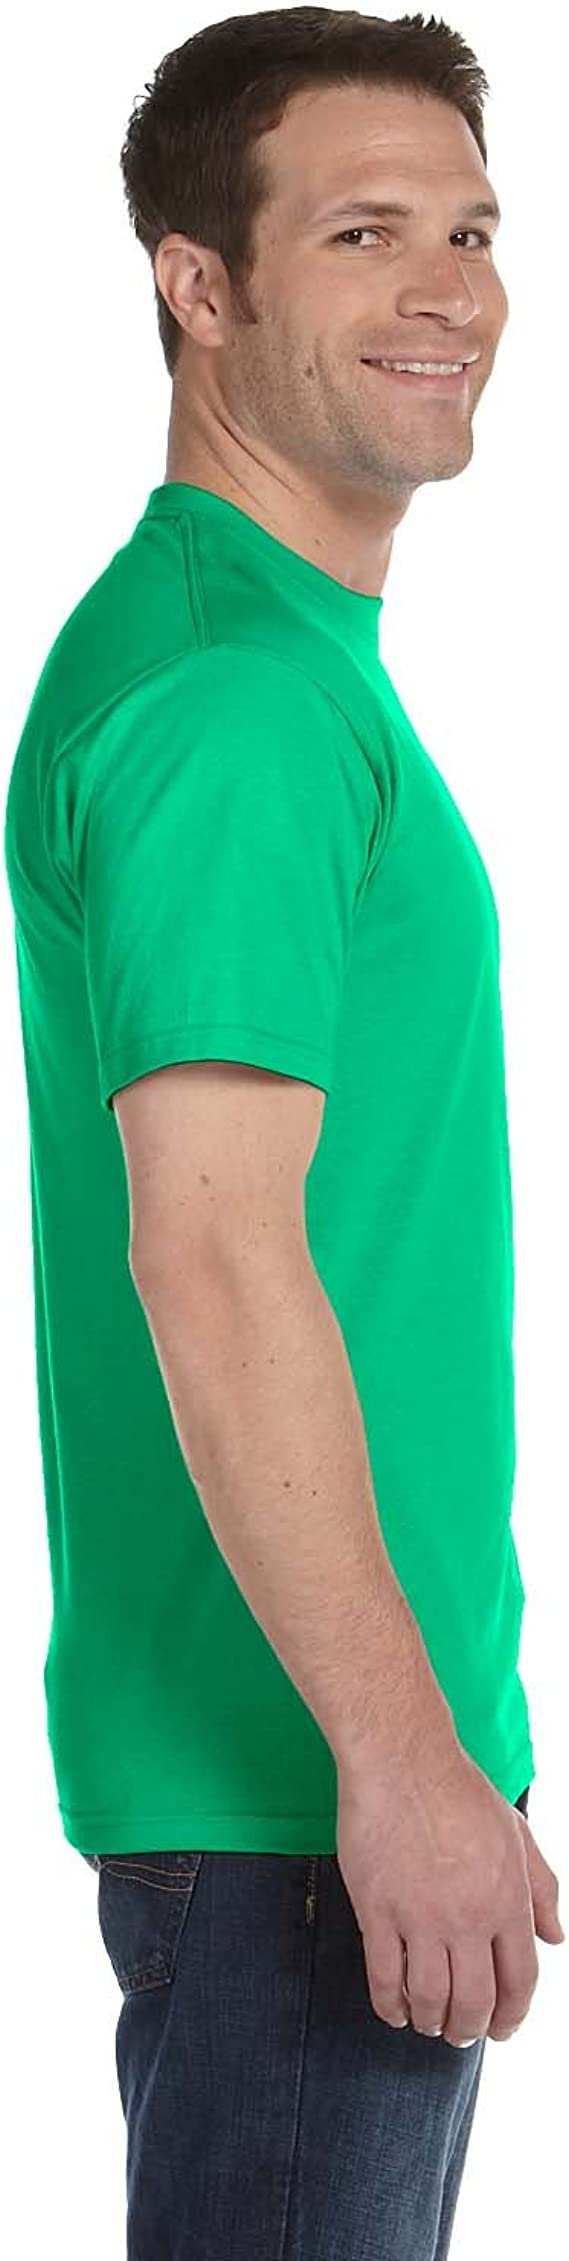 T-shirt OLIVE GREEN L FREE SHIP WHOLE ORDER W PURCHASE